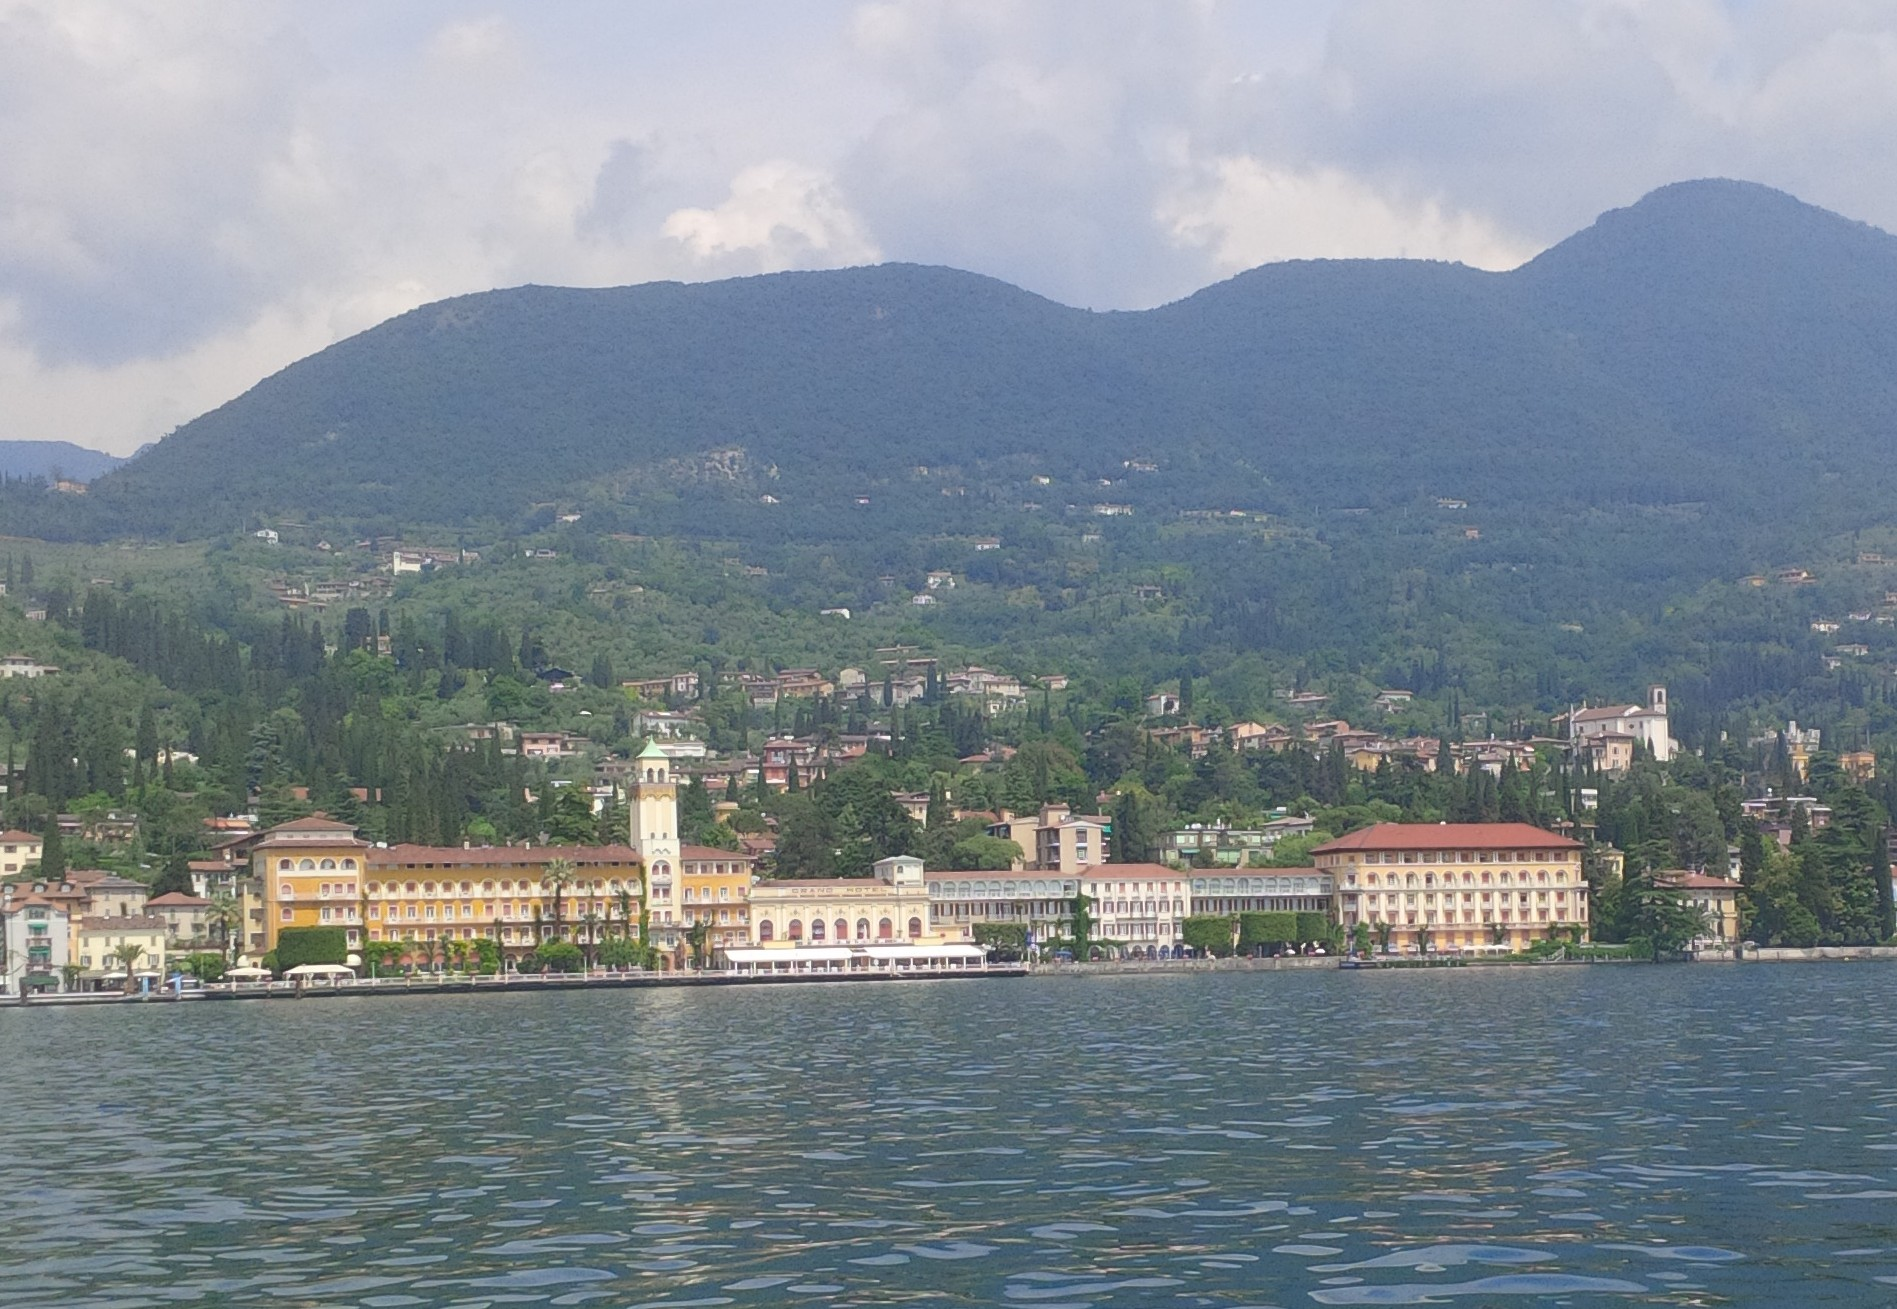 The Grand Hotel on Lake Garda